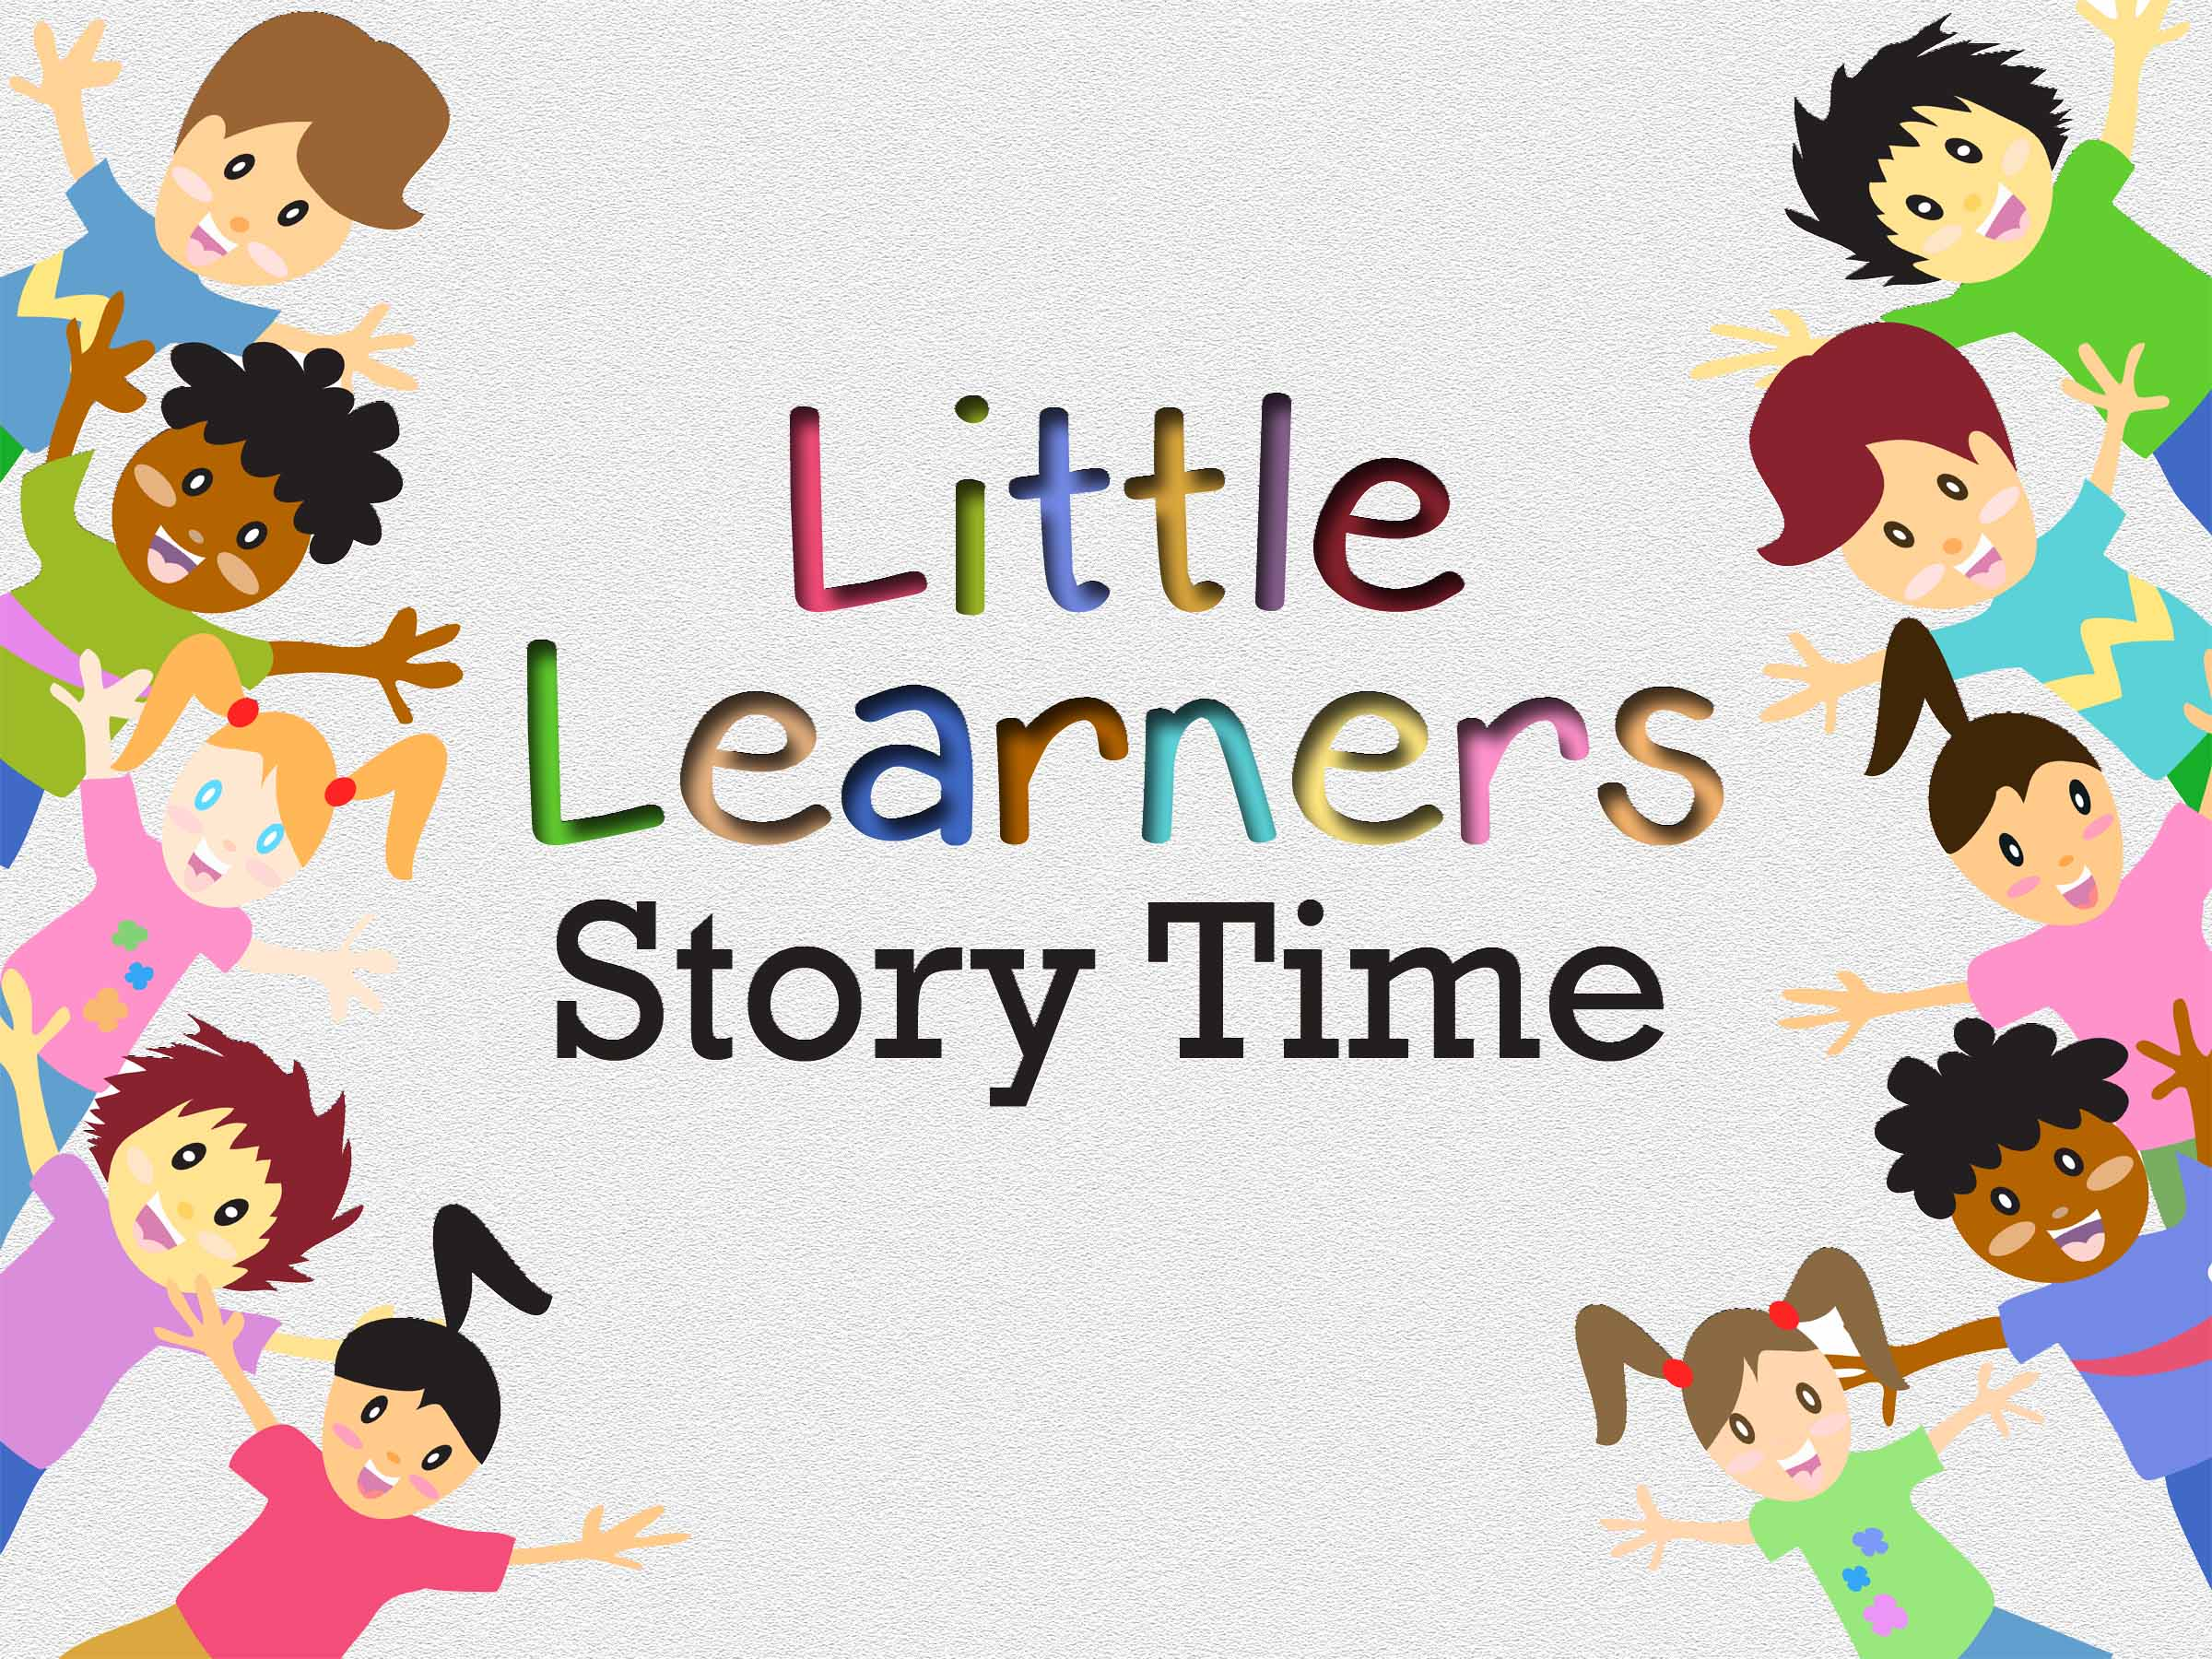 Storytime clipart learner. Little learners indianapolis public